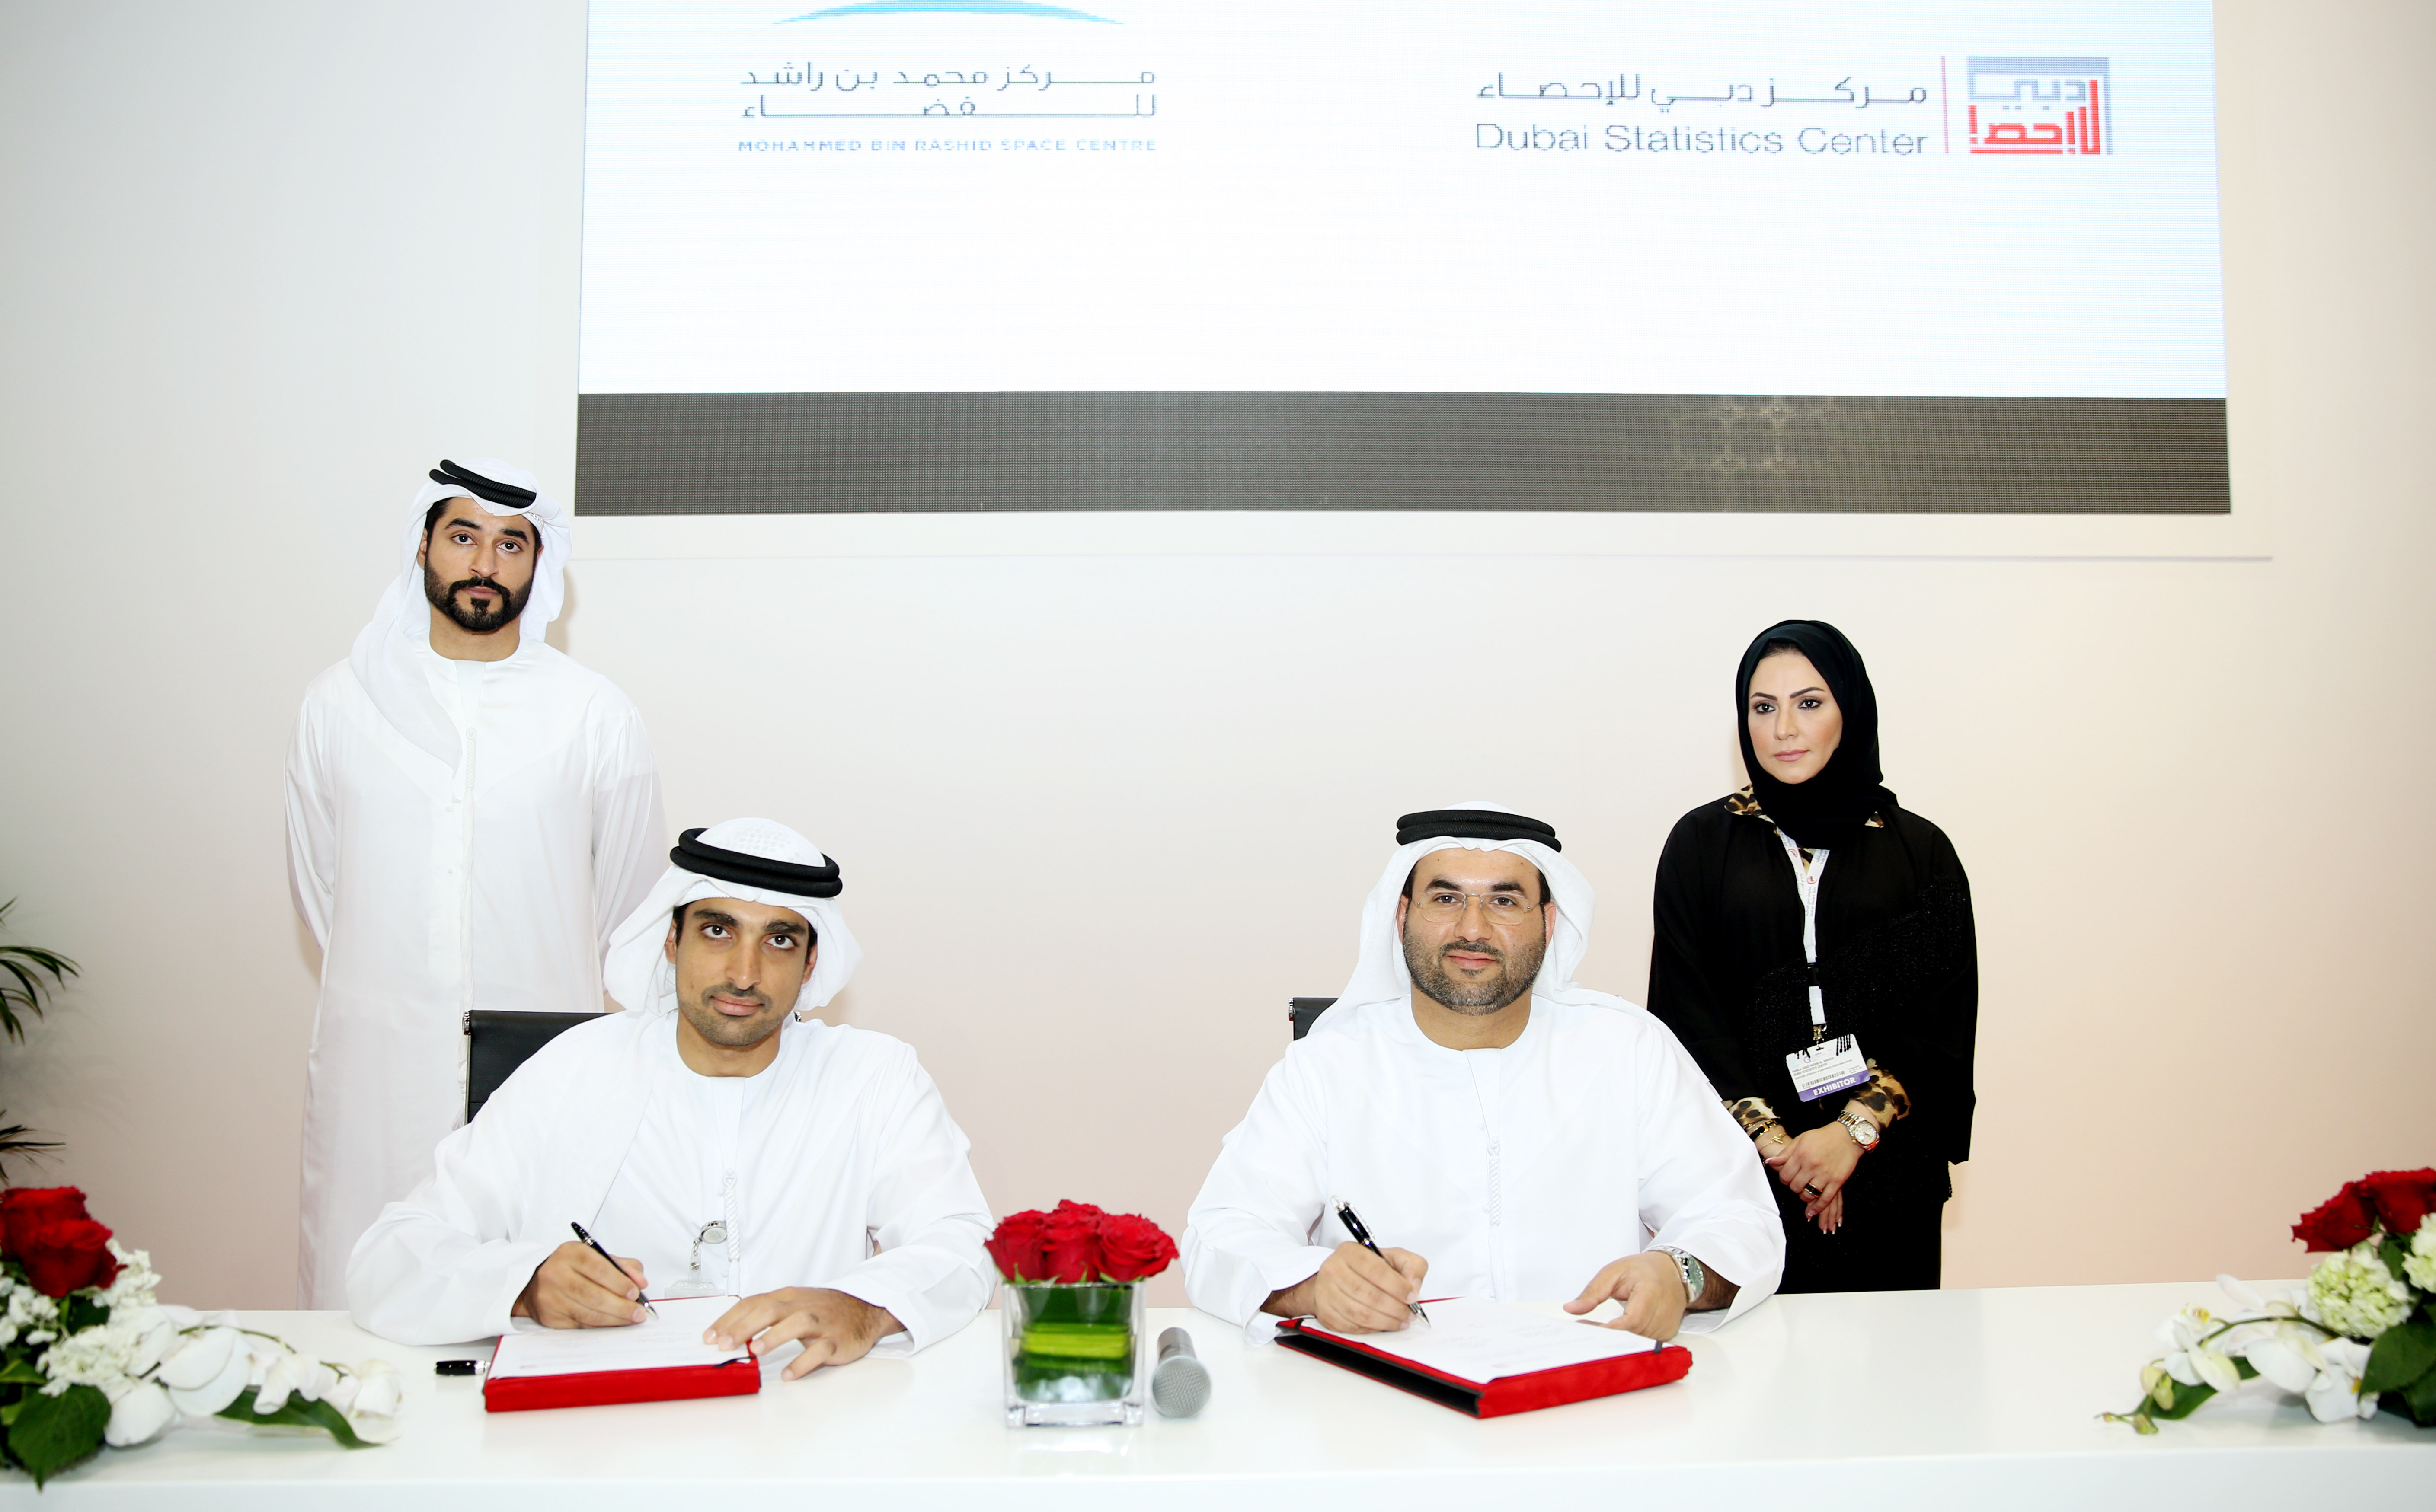 Image : Ahmed Al Dashti and Omran Sharaf during signing the Memorandum of Understading in Gitex 2015